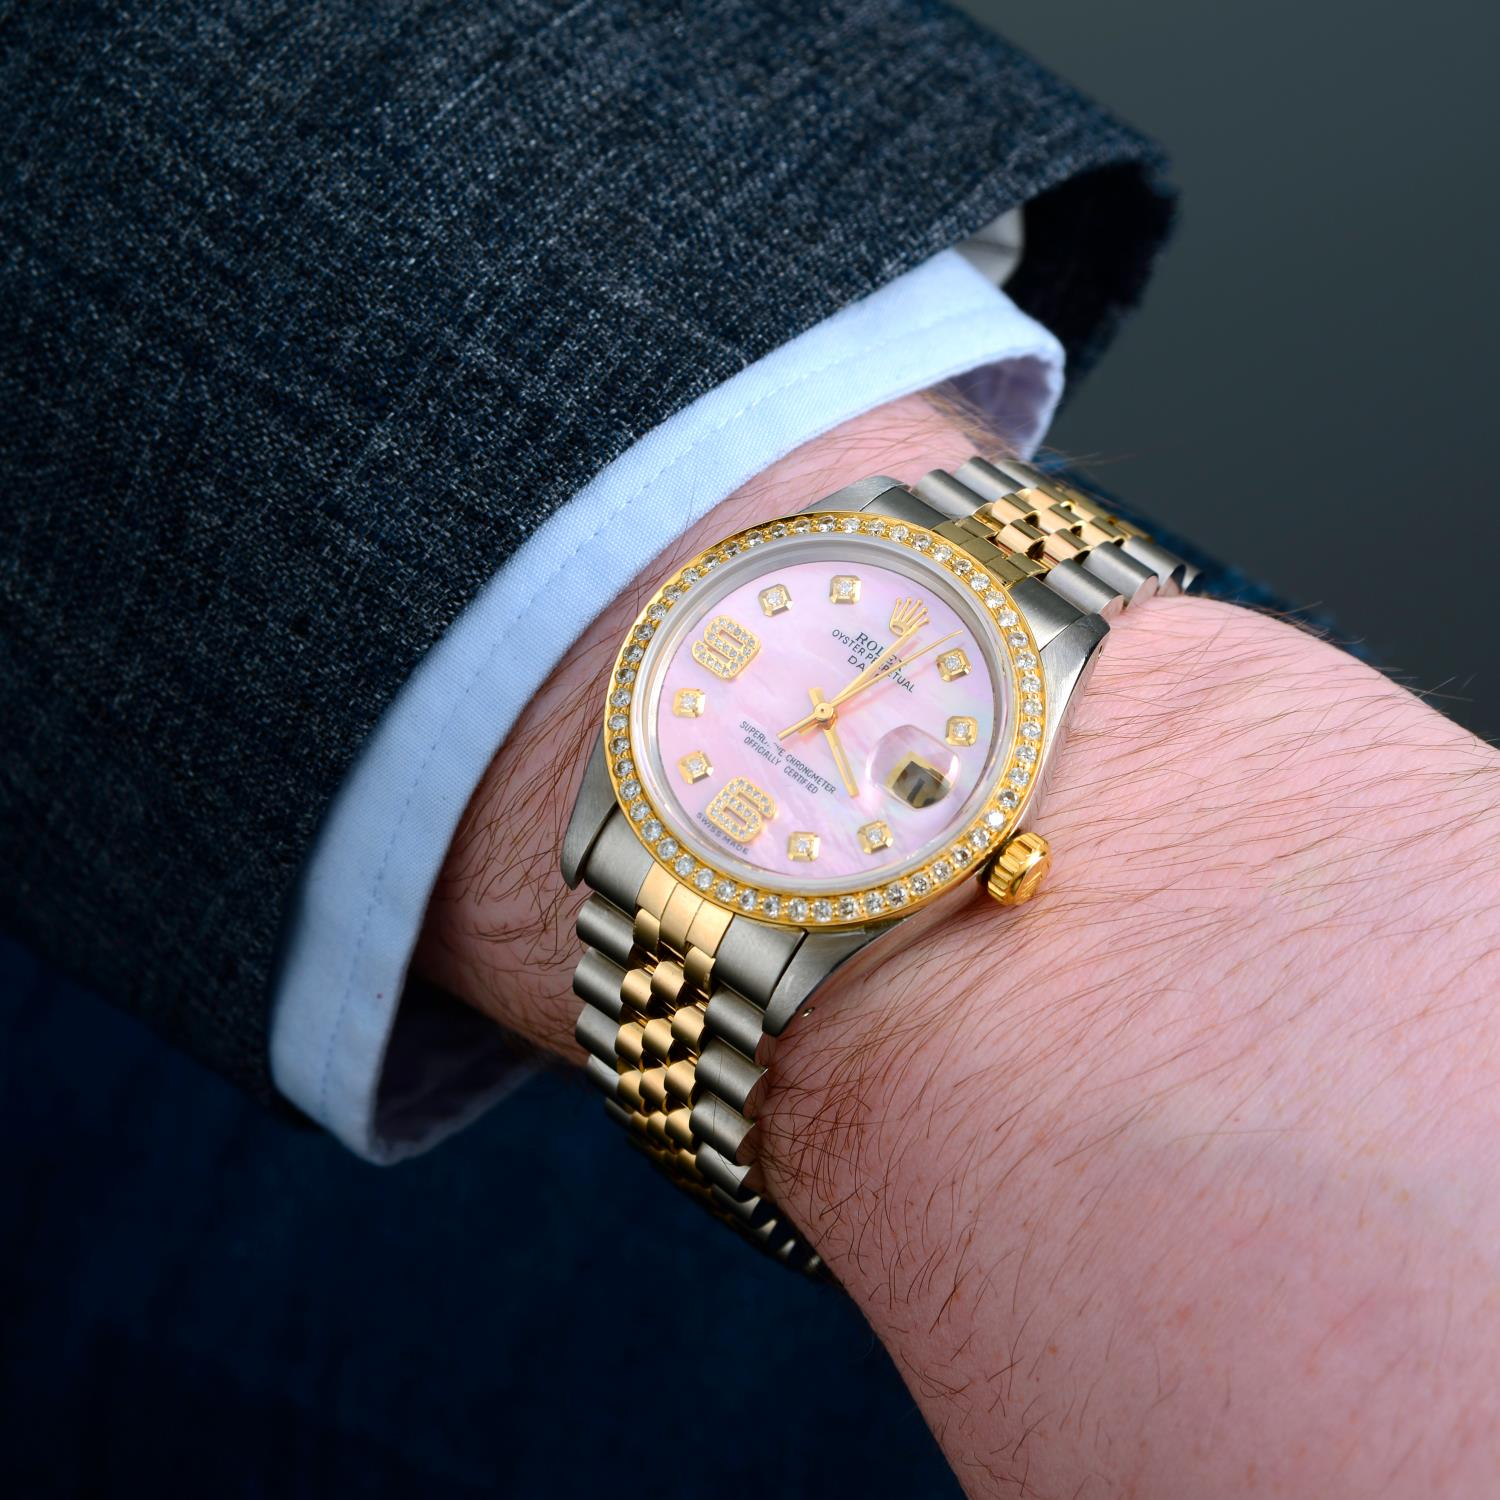 ROLEX - an Oyster Perpetual Date bracelet watch. - Image 3 of 5